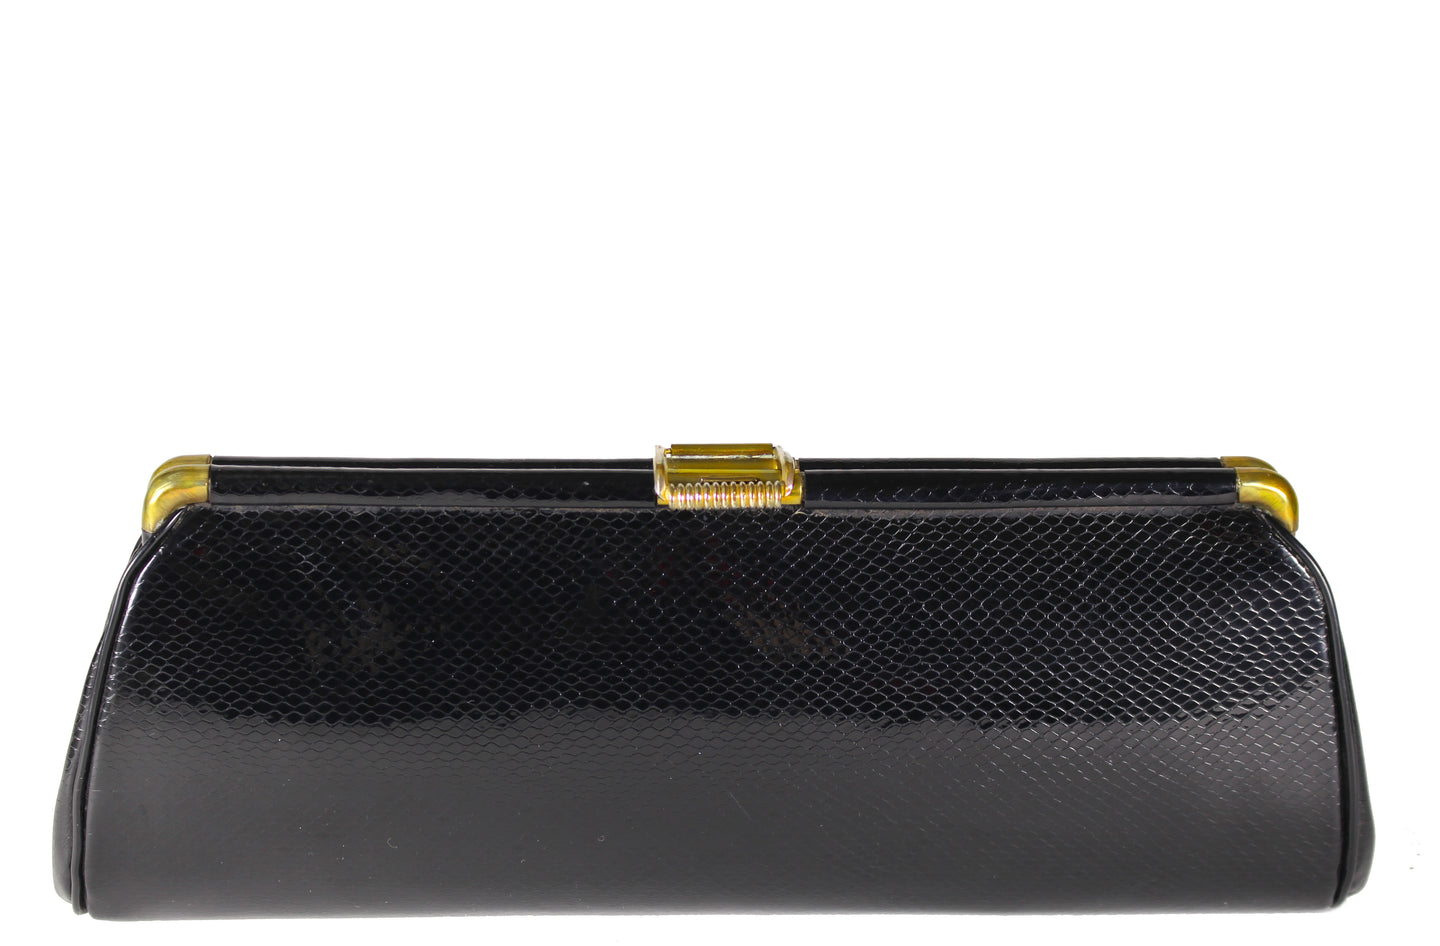 Elongated black snakeskin print clutch